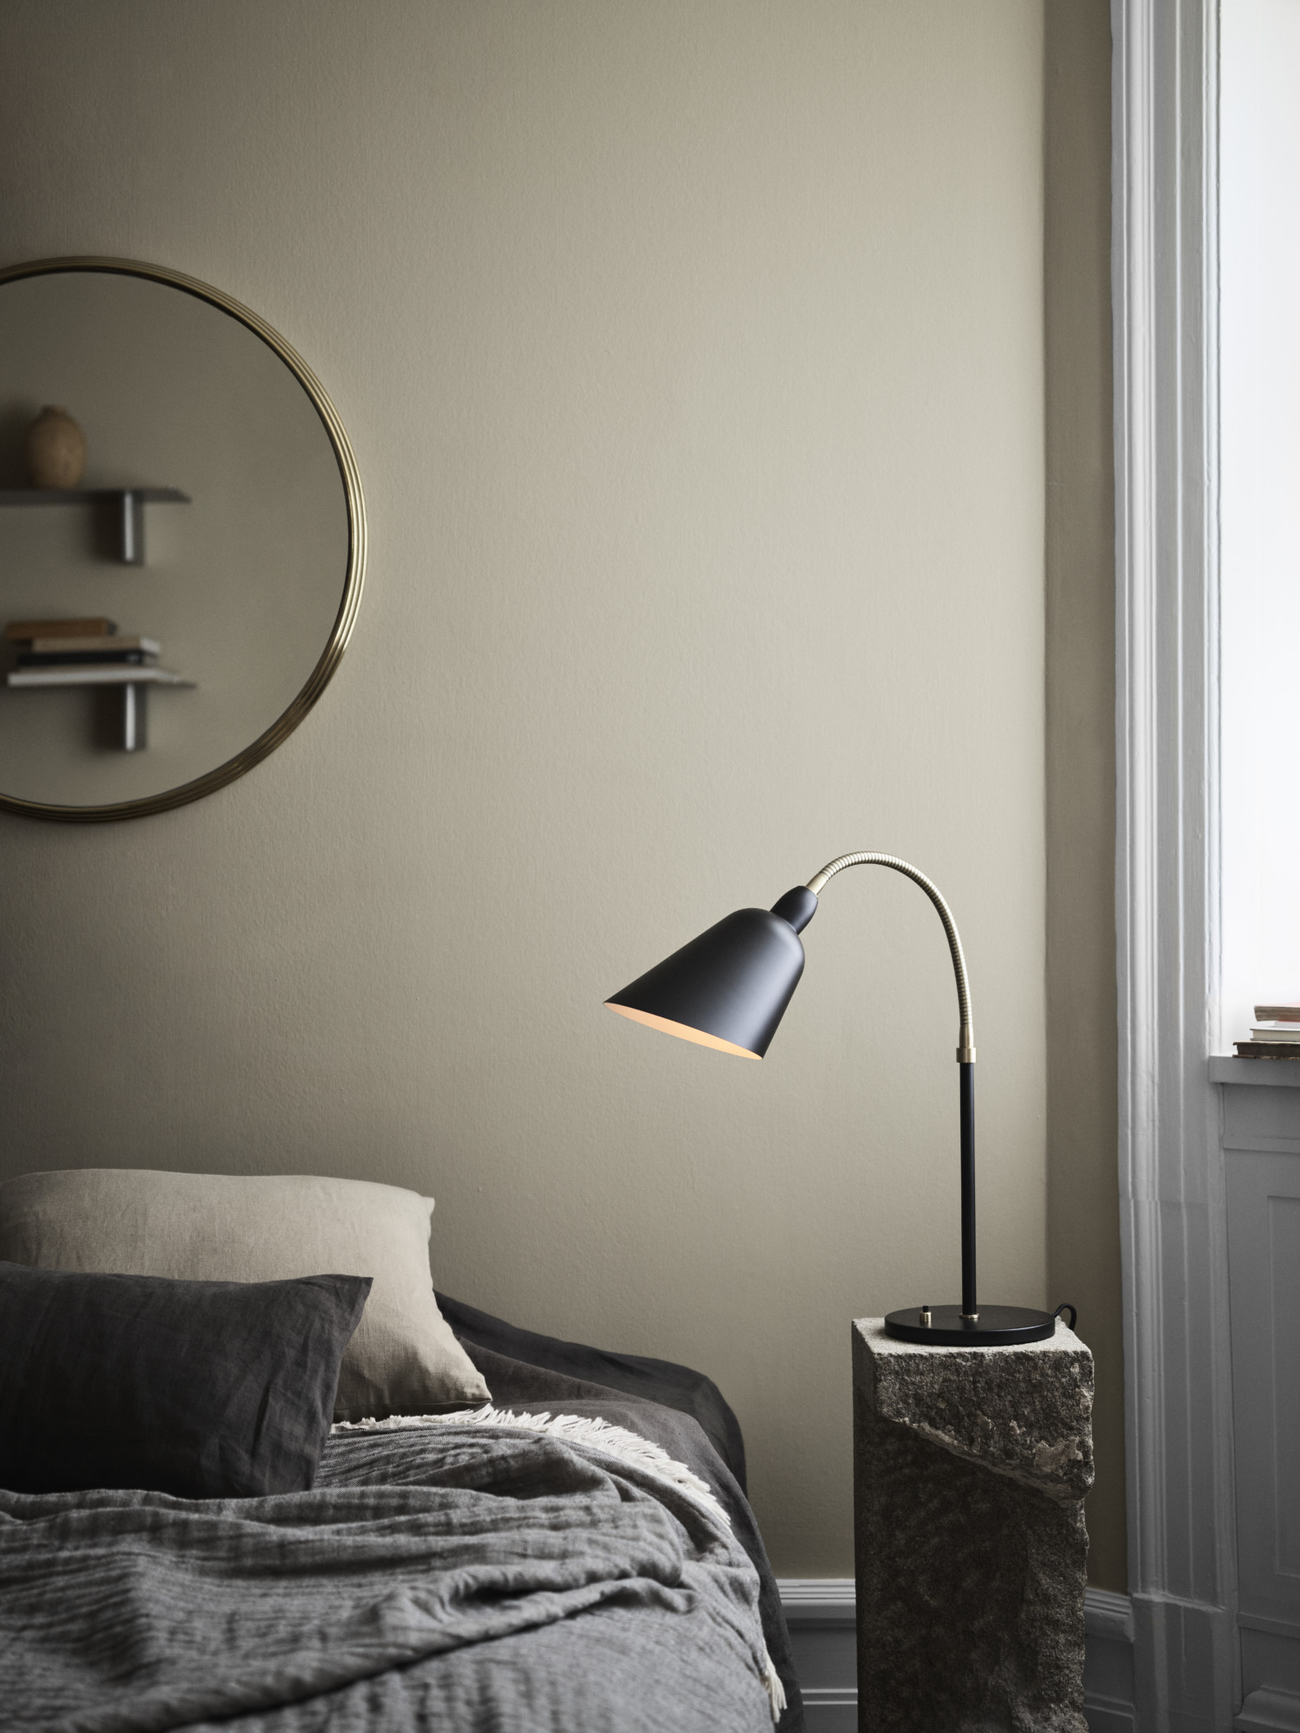 https://www.fundesign.nl/media/catalog/product/a/t/atd_lifestyle_2019_sillonsh5_bellevueaj8_light-1500x2000_1.jpg